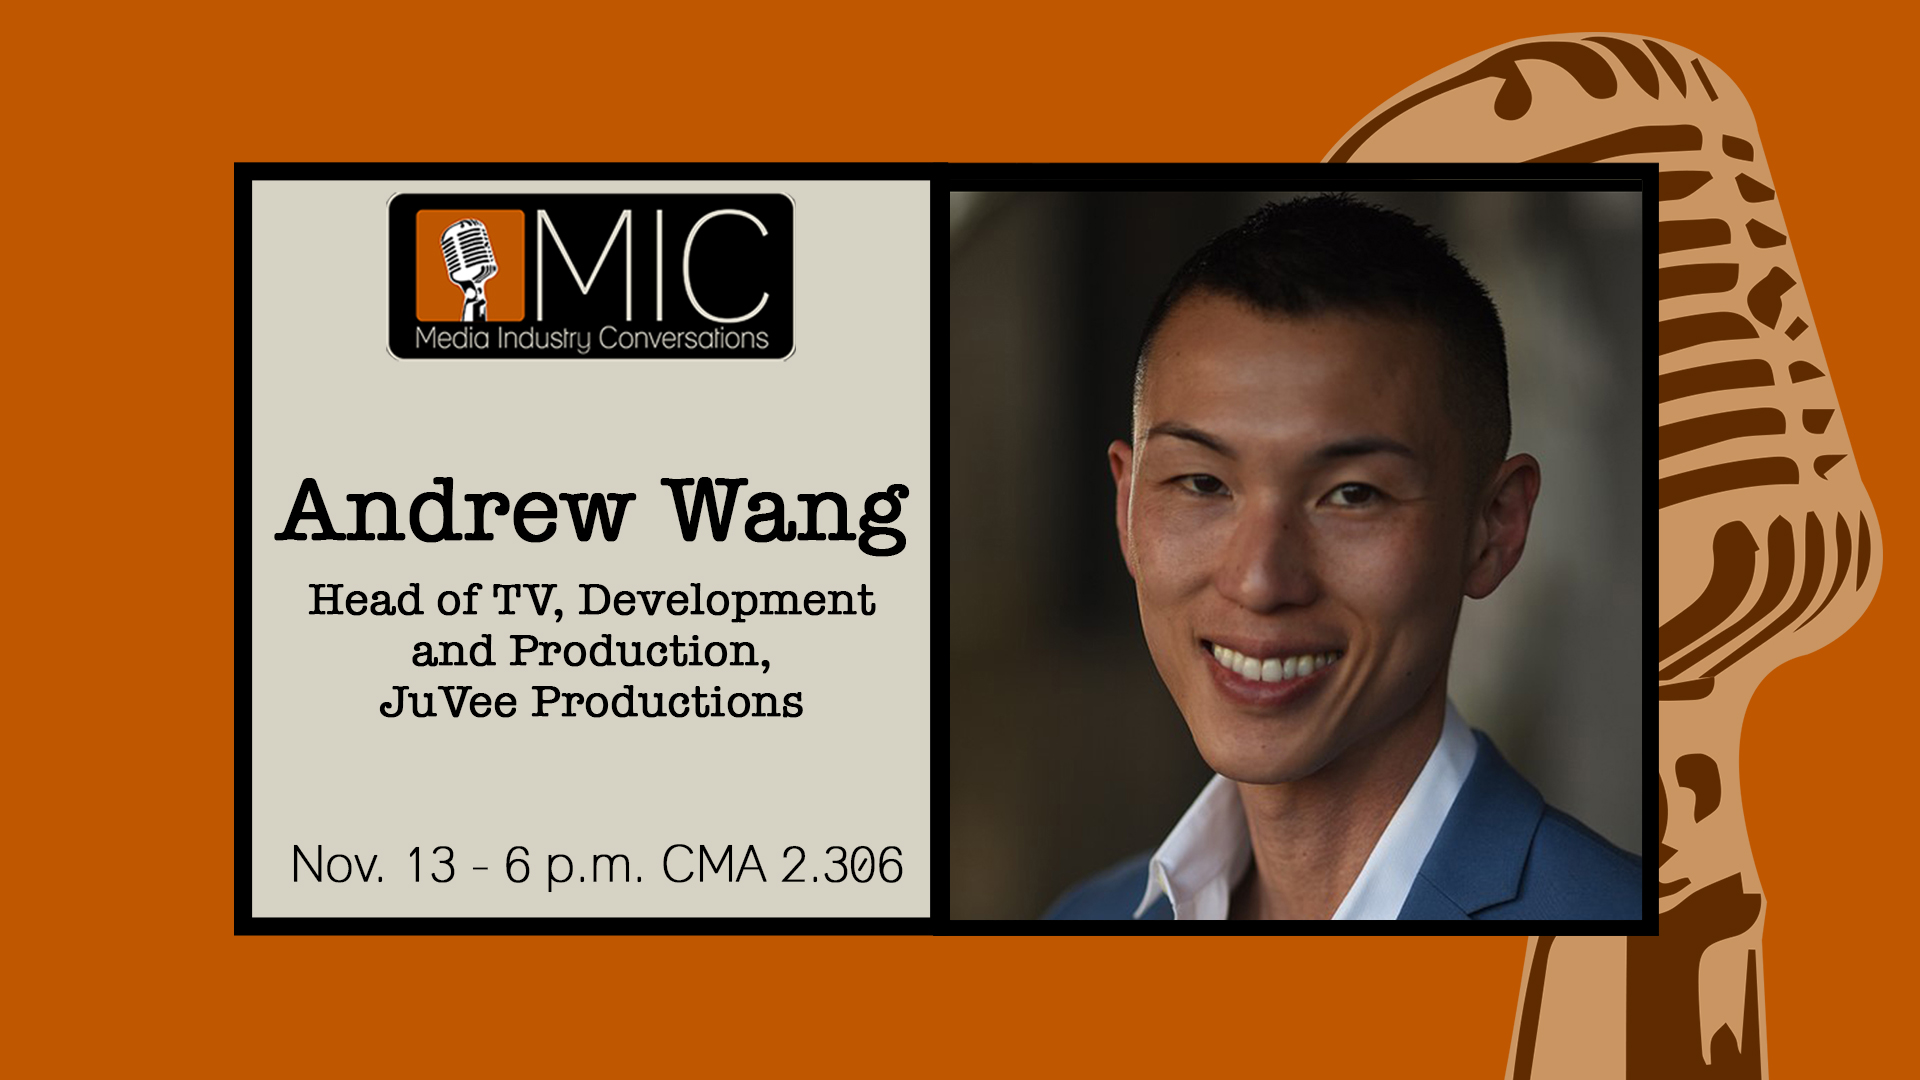 Andrew Wang nov 13